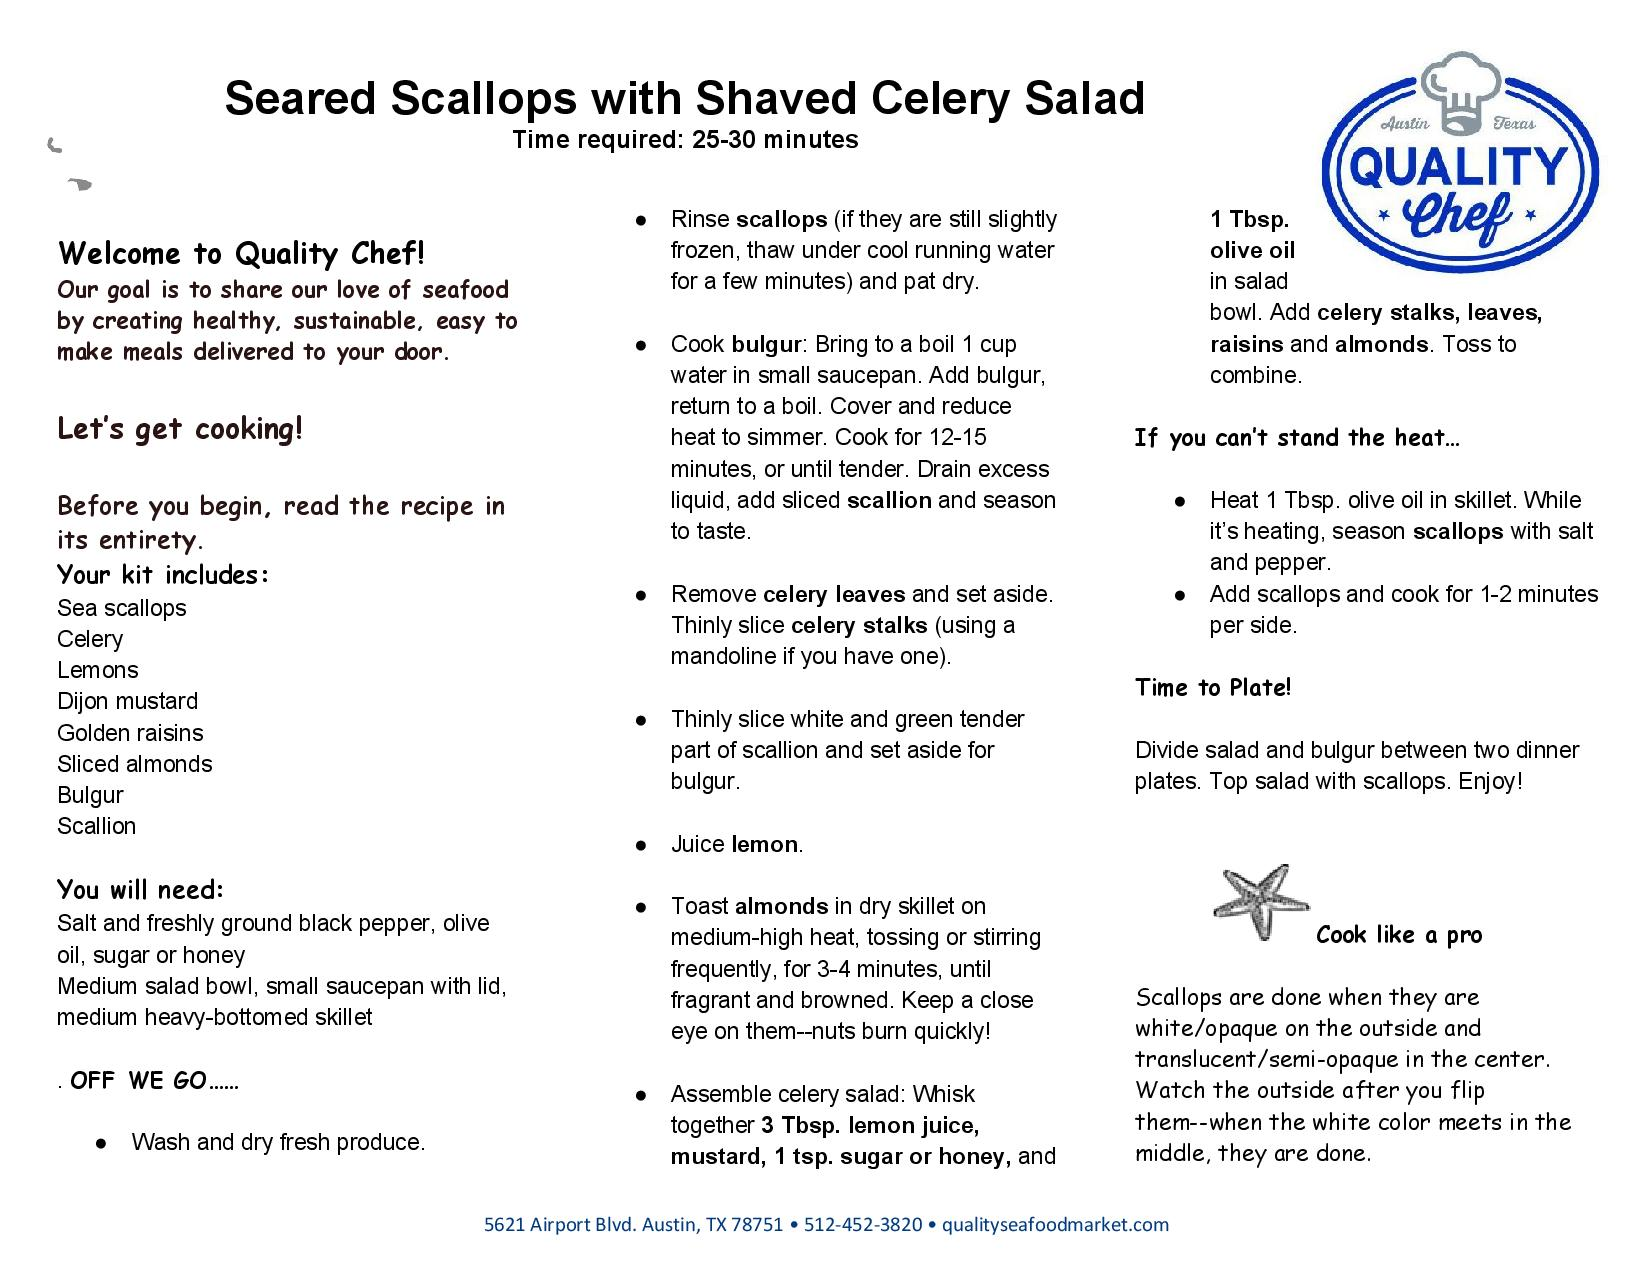 QC Scallops with Shaved Celery Salad page-001.jpg